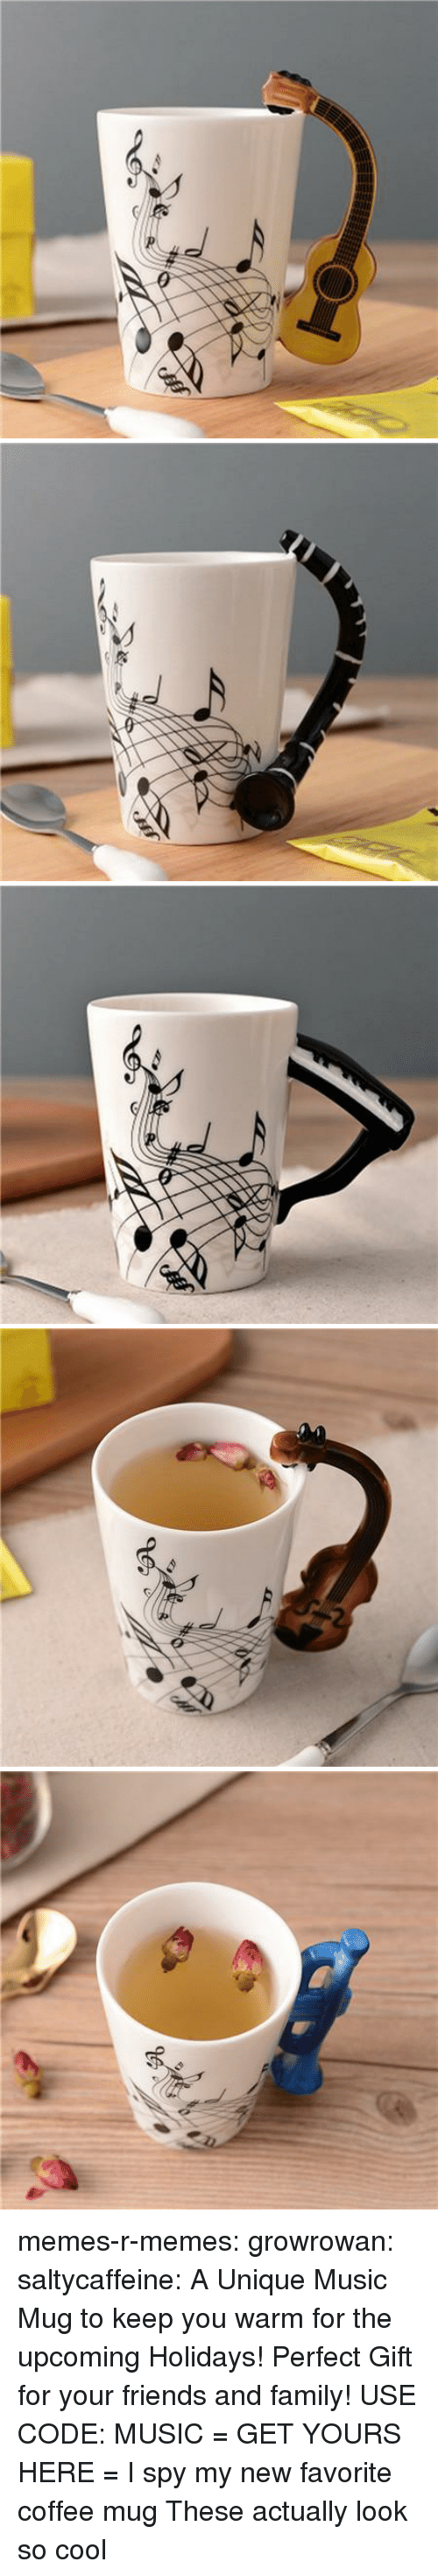 Coffee Mug: memes-r-memes:  growrowan:  saltycaffeine: A Unique Music Mug to keep you warm for the upcoming Holidays! Perfect Gift for your friends and family! USE CODE: MUSIC = GET YOURS HERE =   I spy my new favorite coffee mug  These actually look so cool